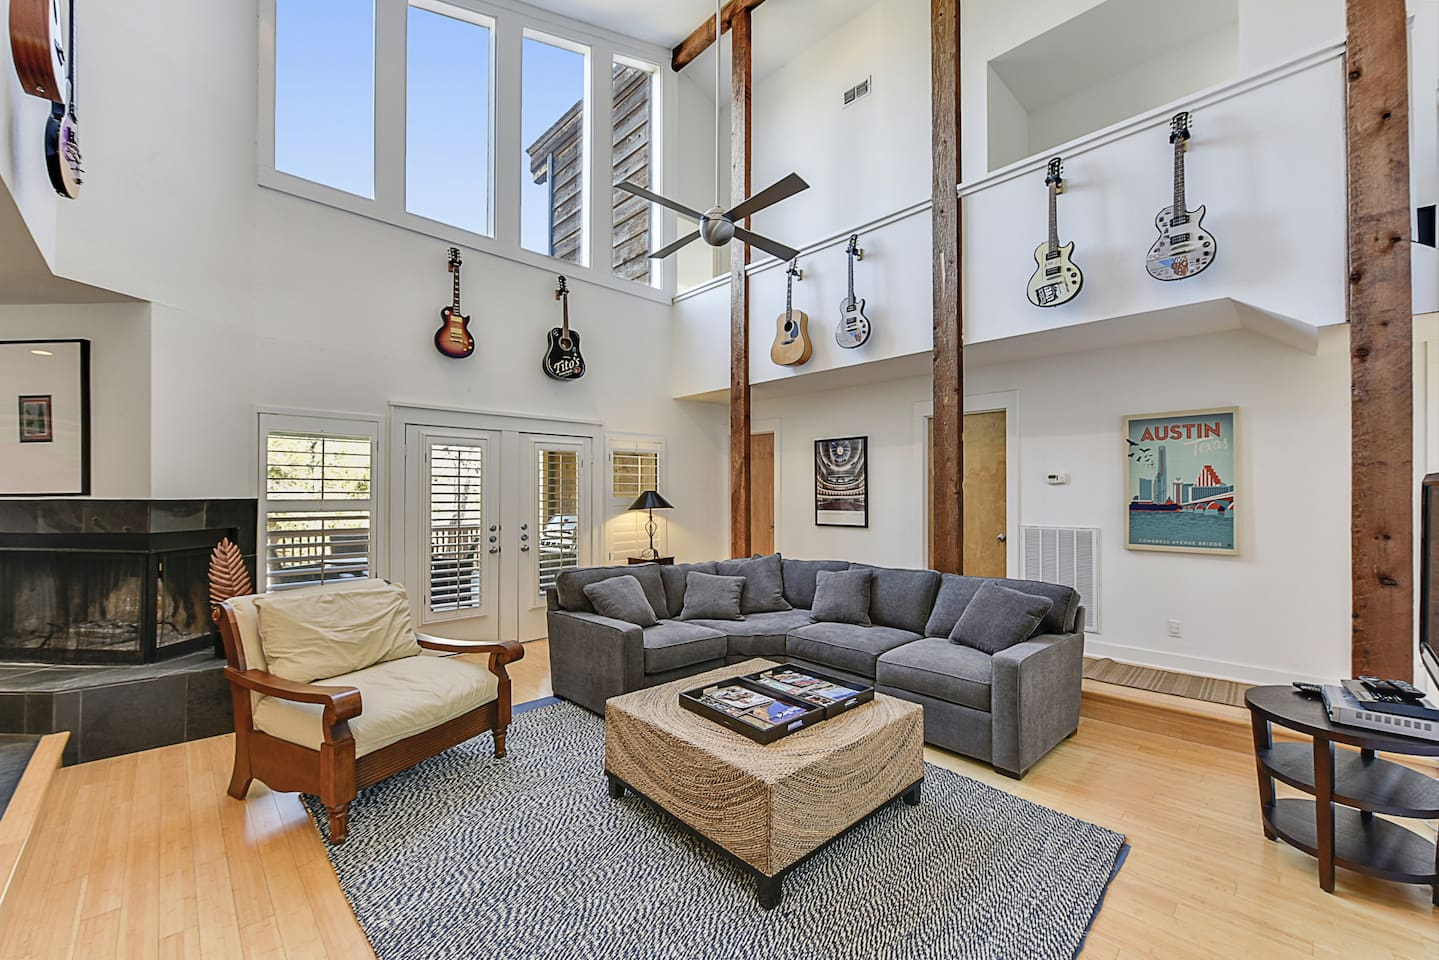 Double height ceilings fill the living area with light